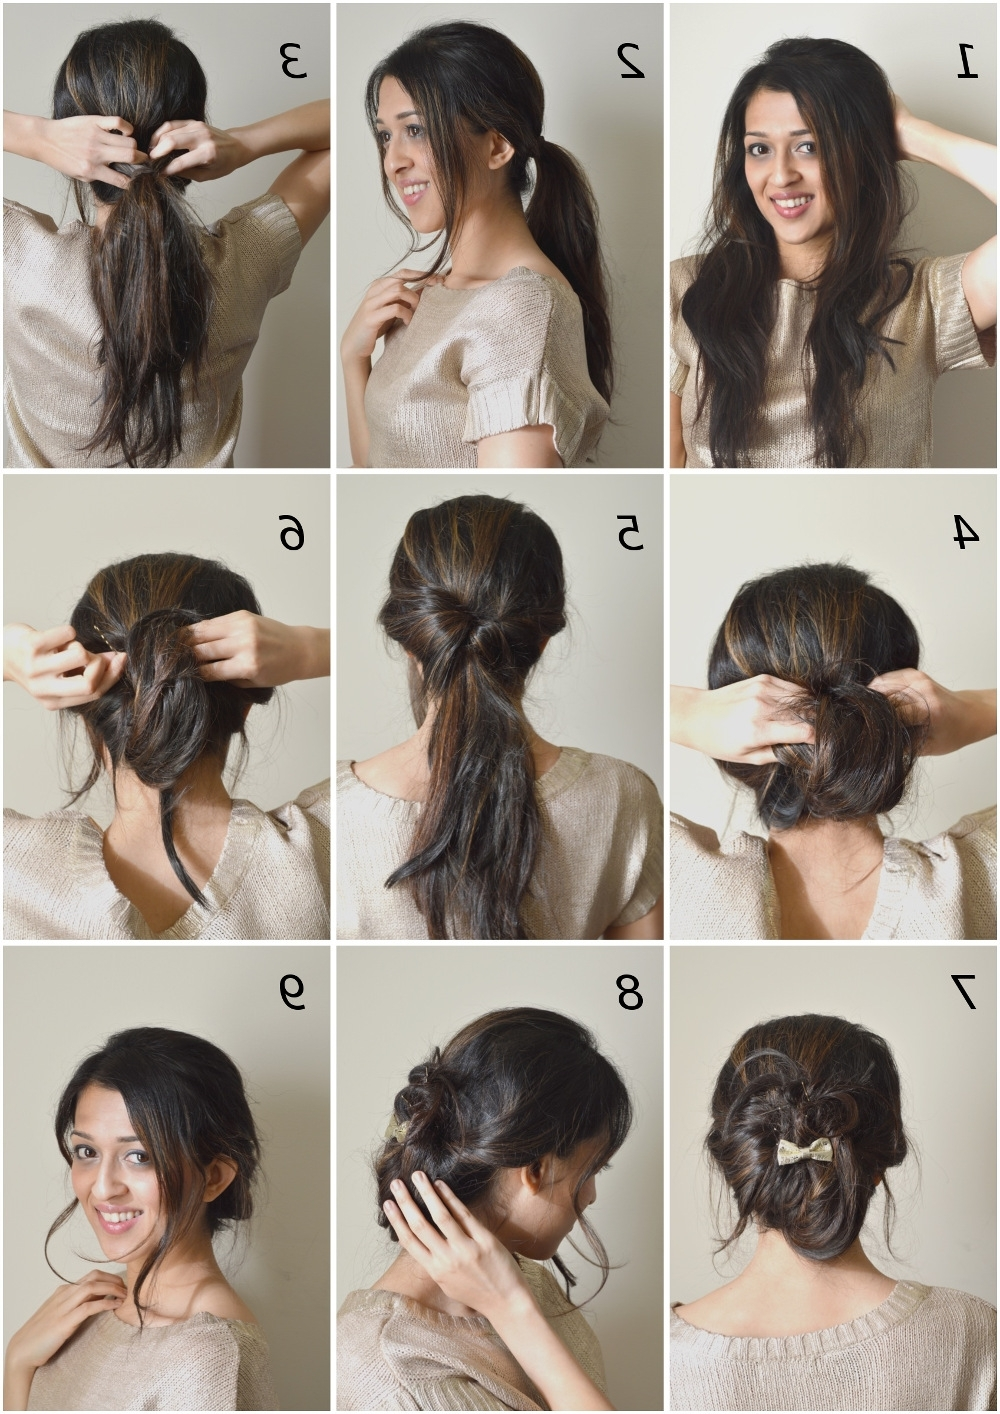 15 Amazing Ways To Upgrade Your Messy Bun This Summer – Bun & Braids Inside Current Simple Side Messy Ponytail Hairstyles (View 1 of 20)